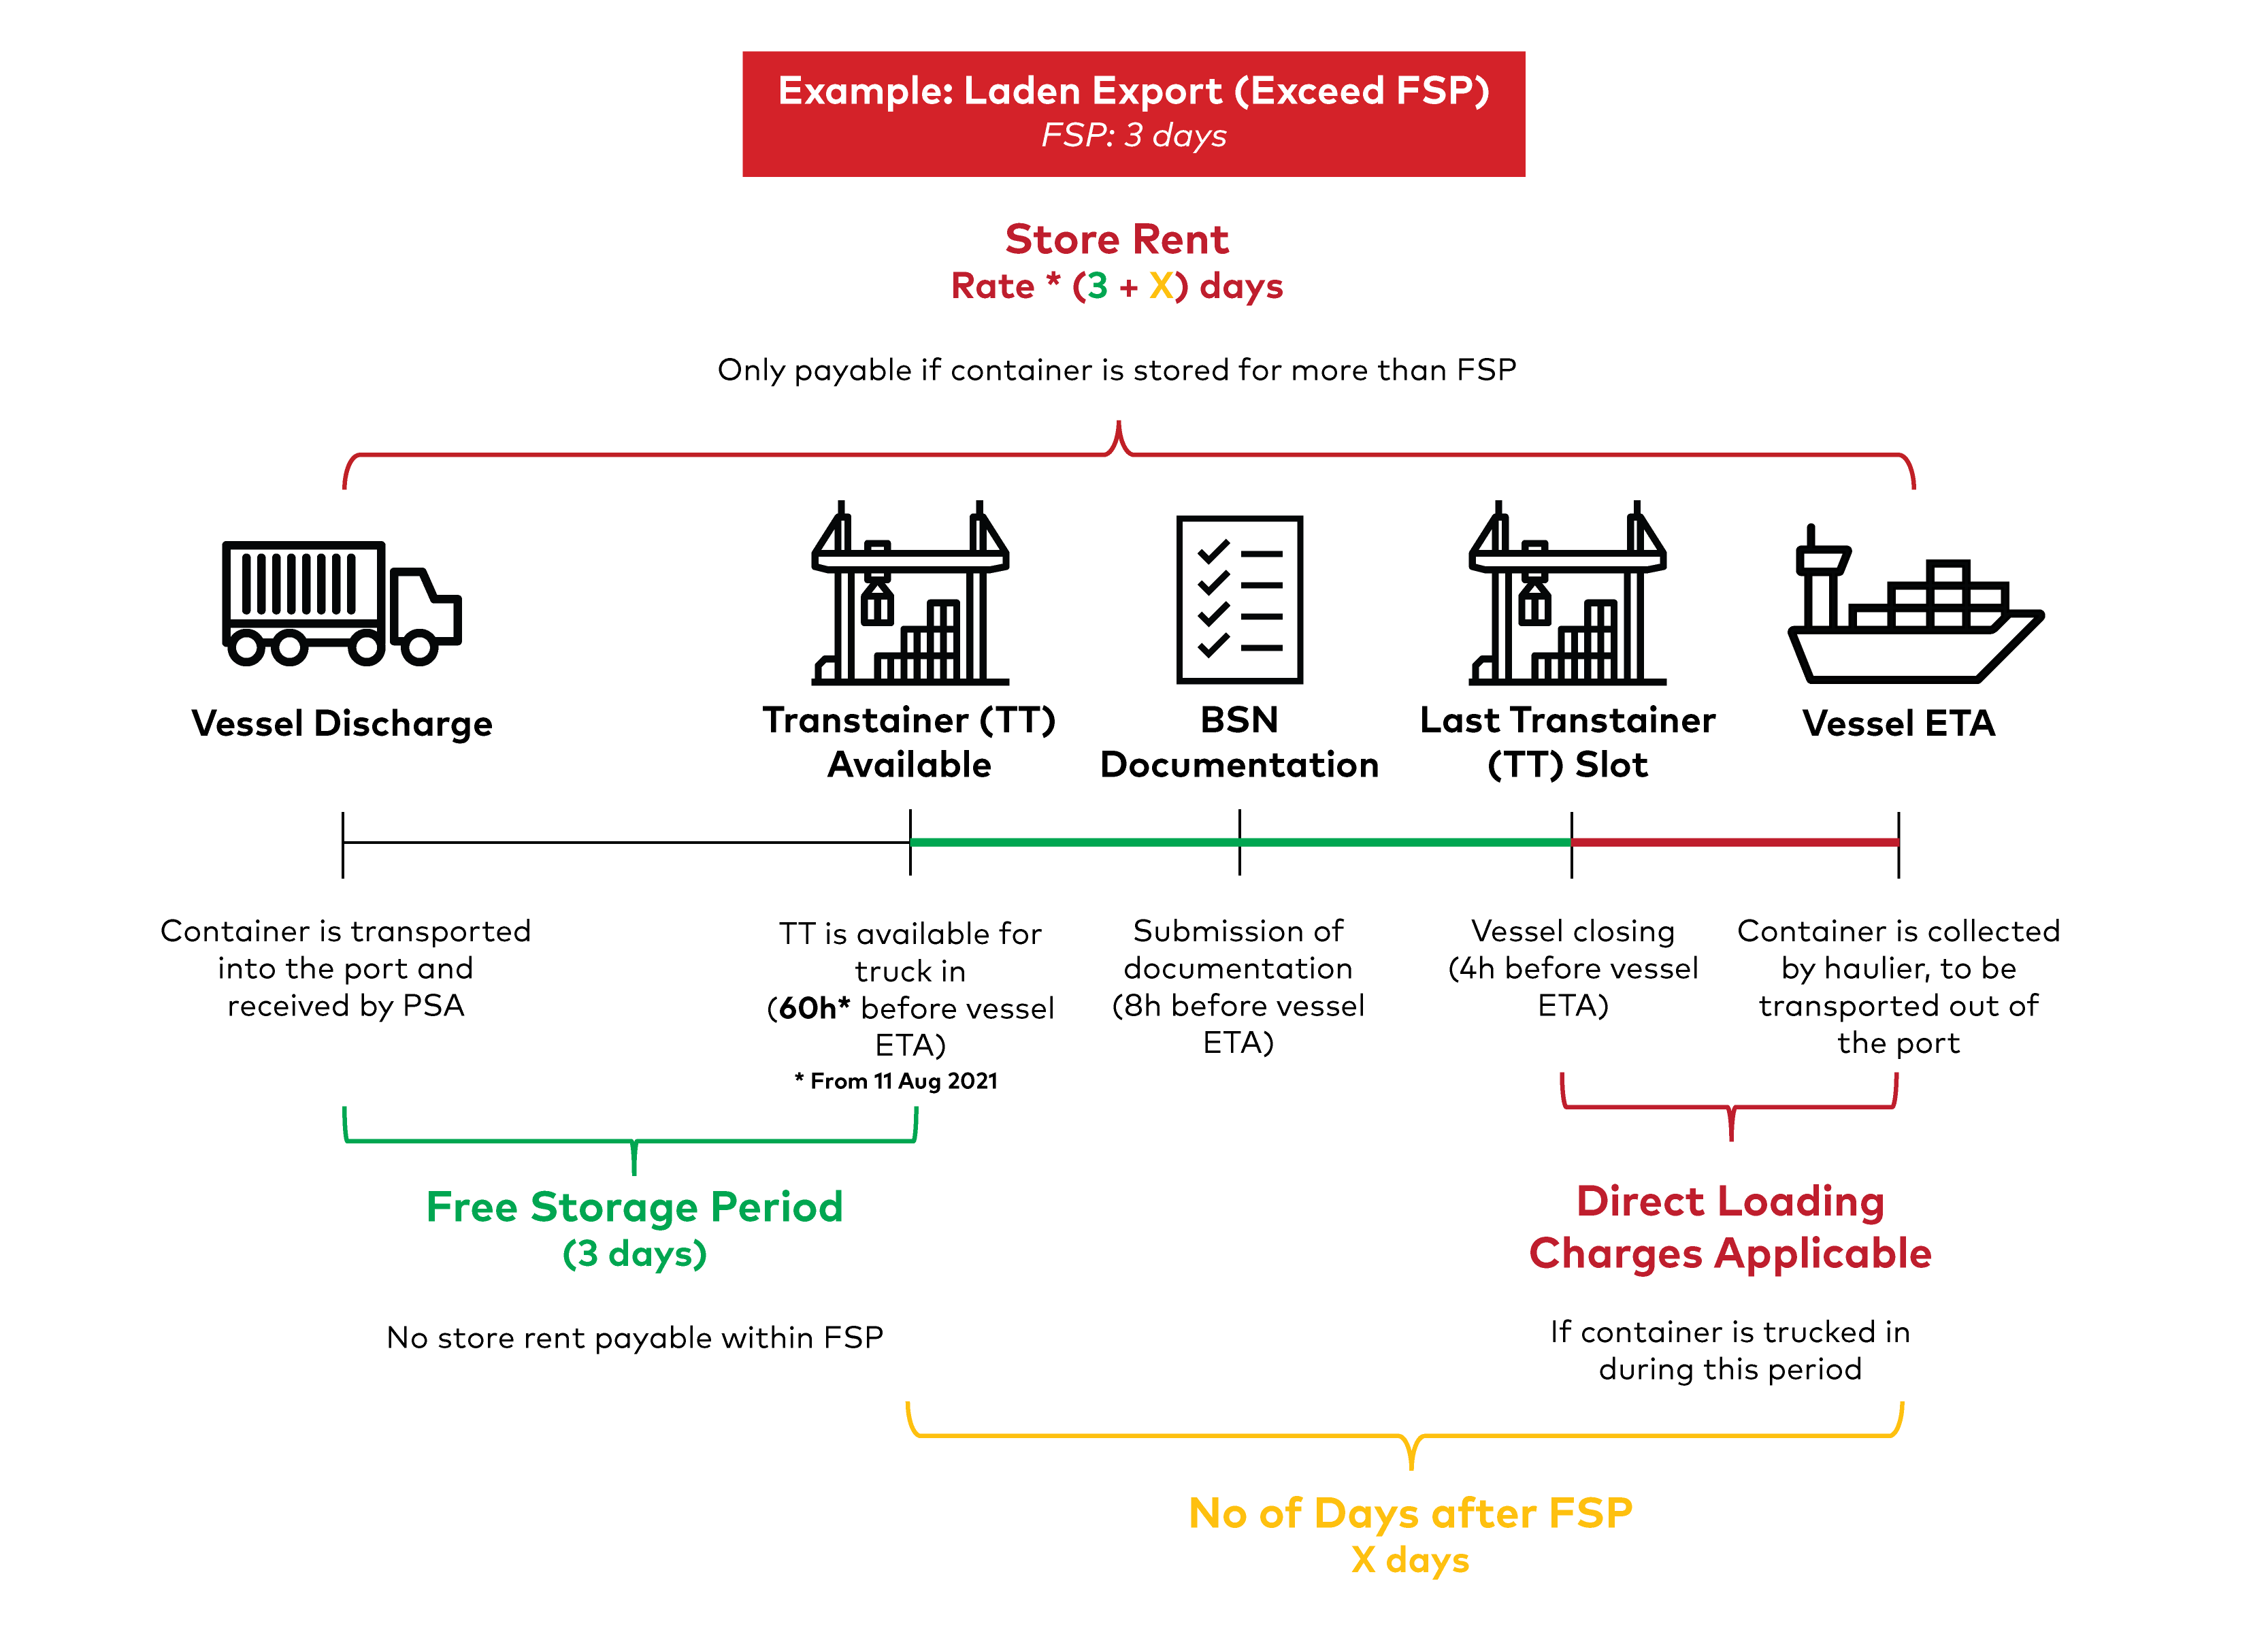 Store Rent Illustrations - Laden Export (Exceed FSP) - Updated Aug 2021